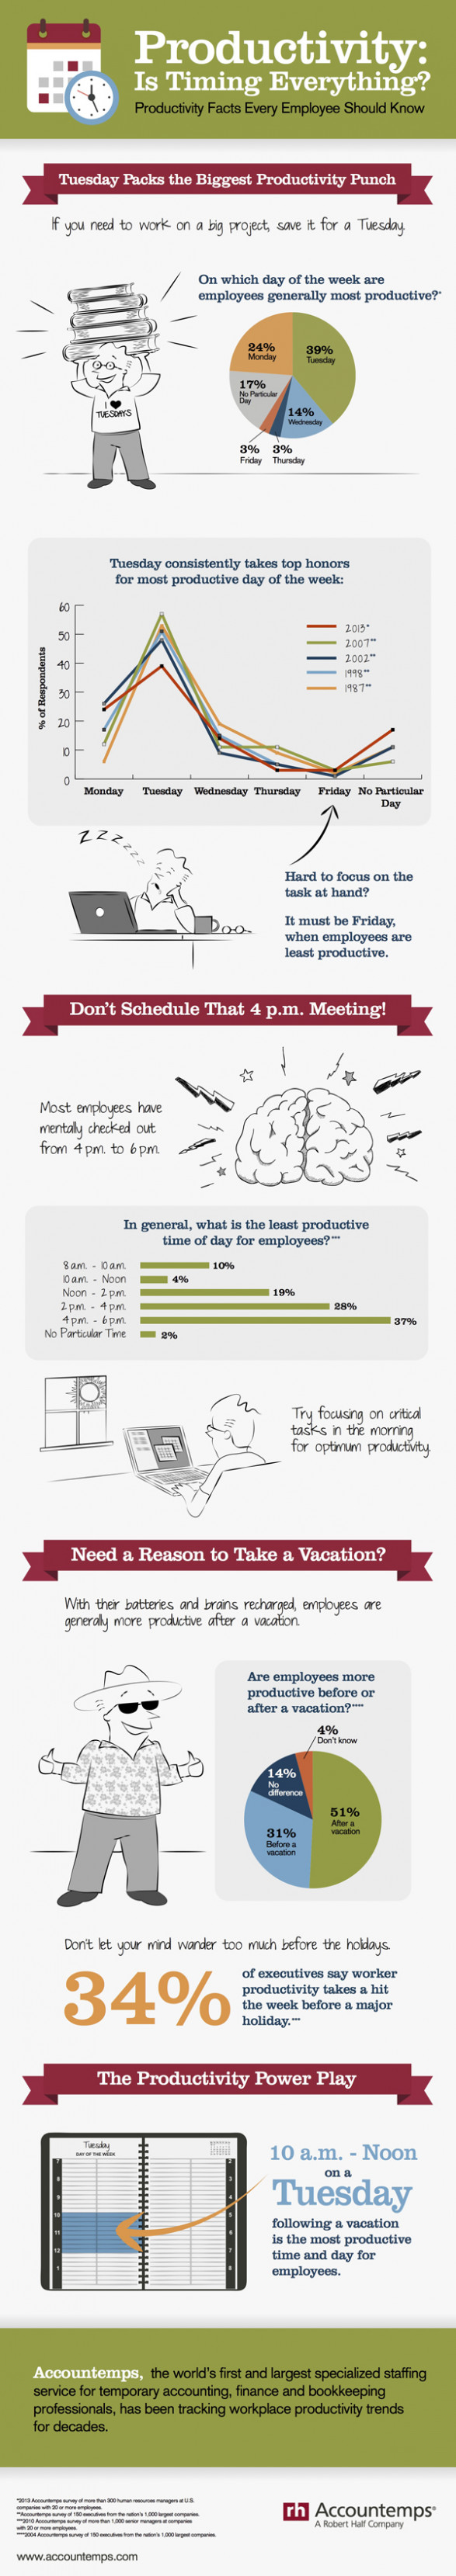 15 Tips for Boosting Your Productivity